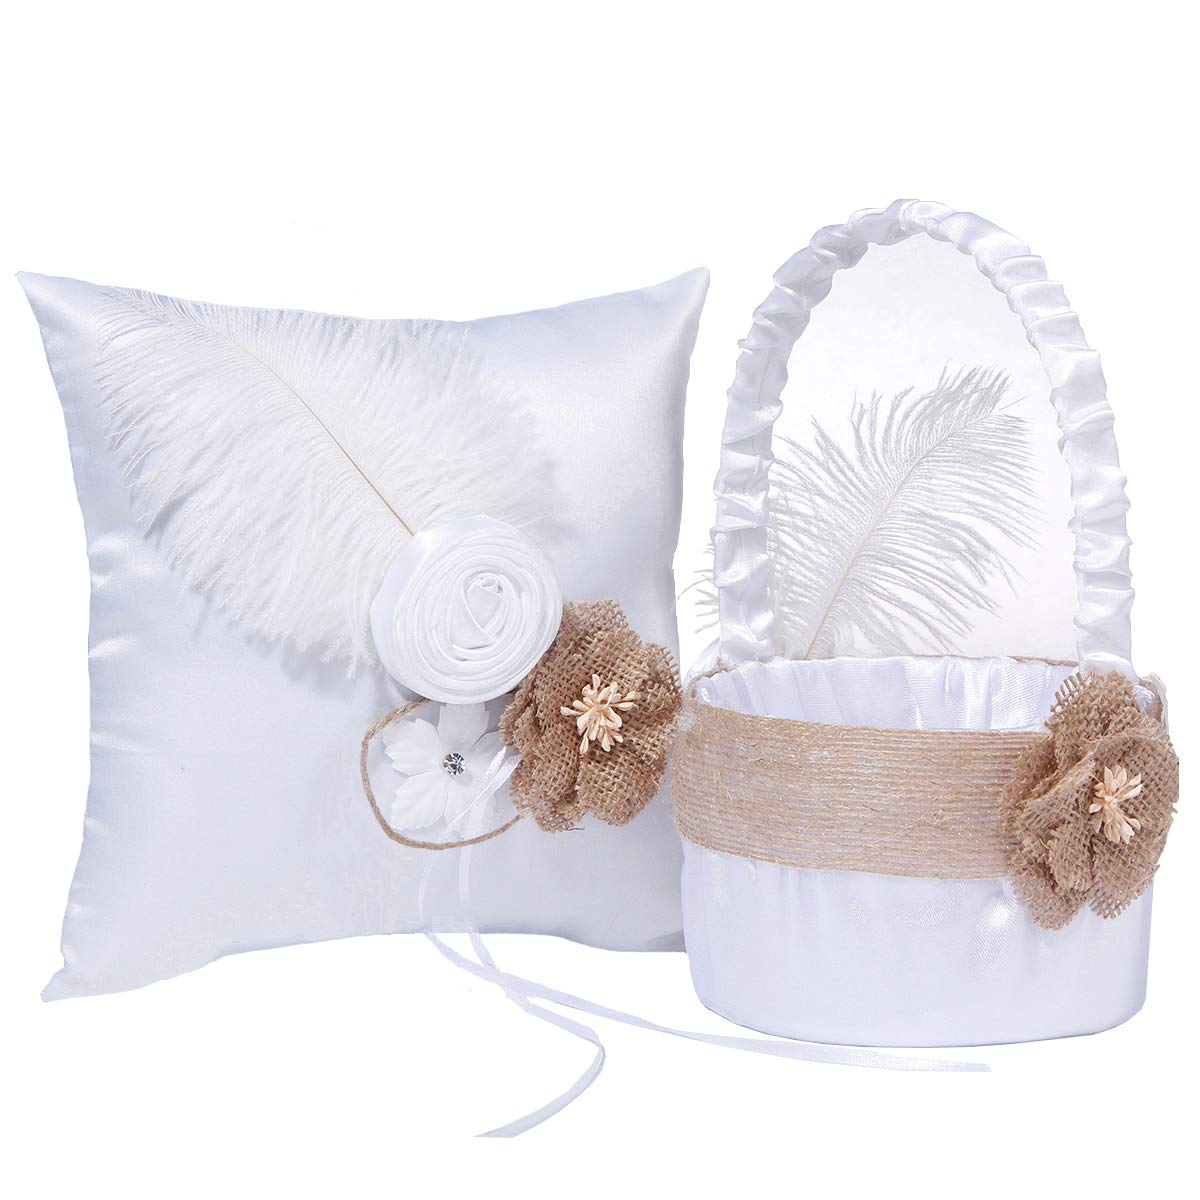 M&A Decor Wedding Flower Girl Basket Ring Bearer Pillow Elegant White Satin Set with Feather Burlap Flowers,2019 New by M&A Decor